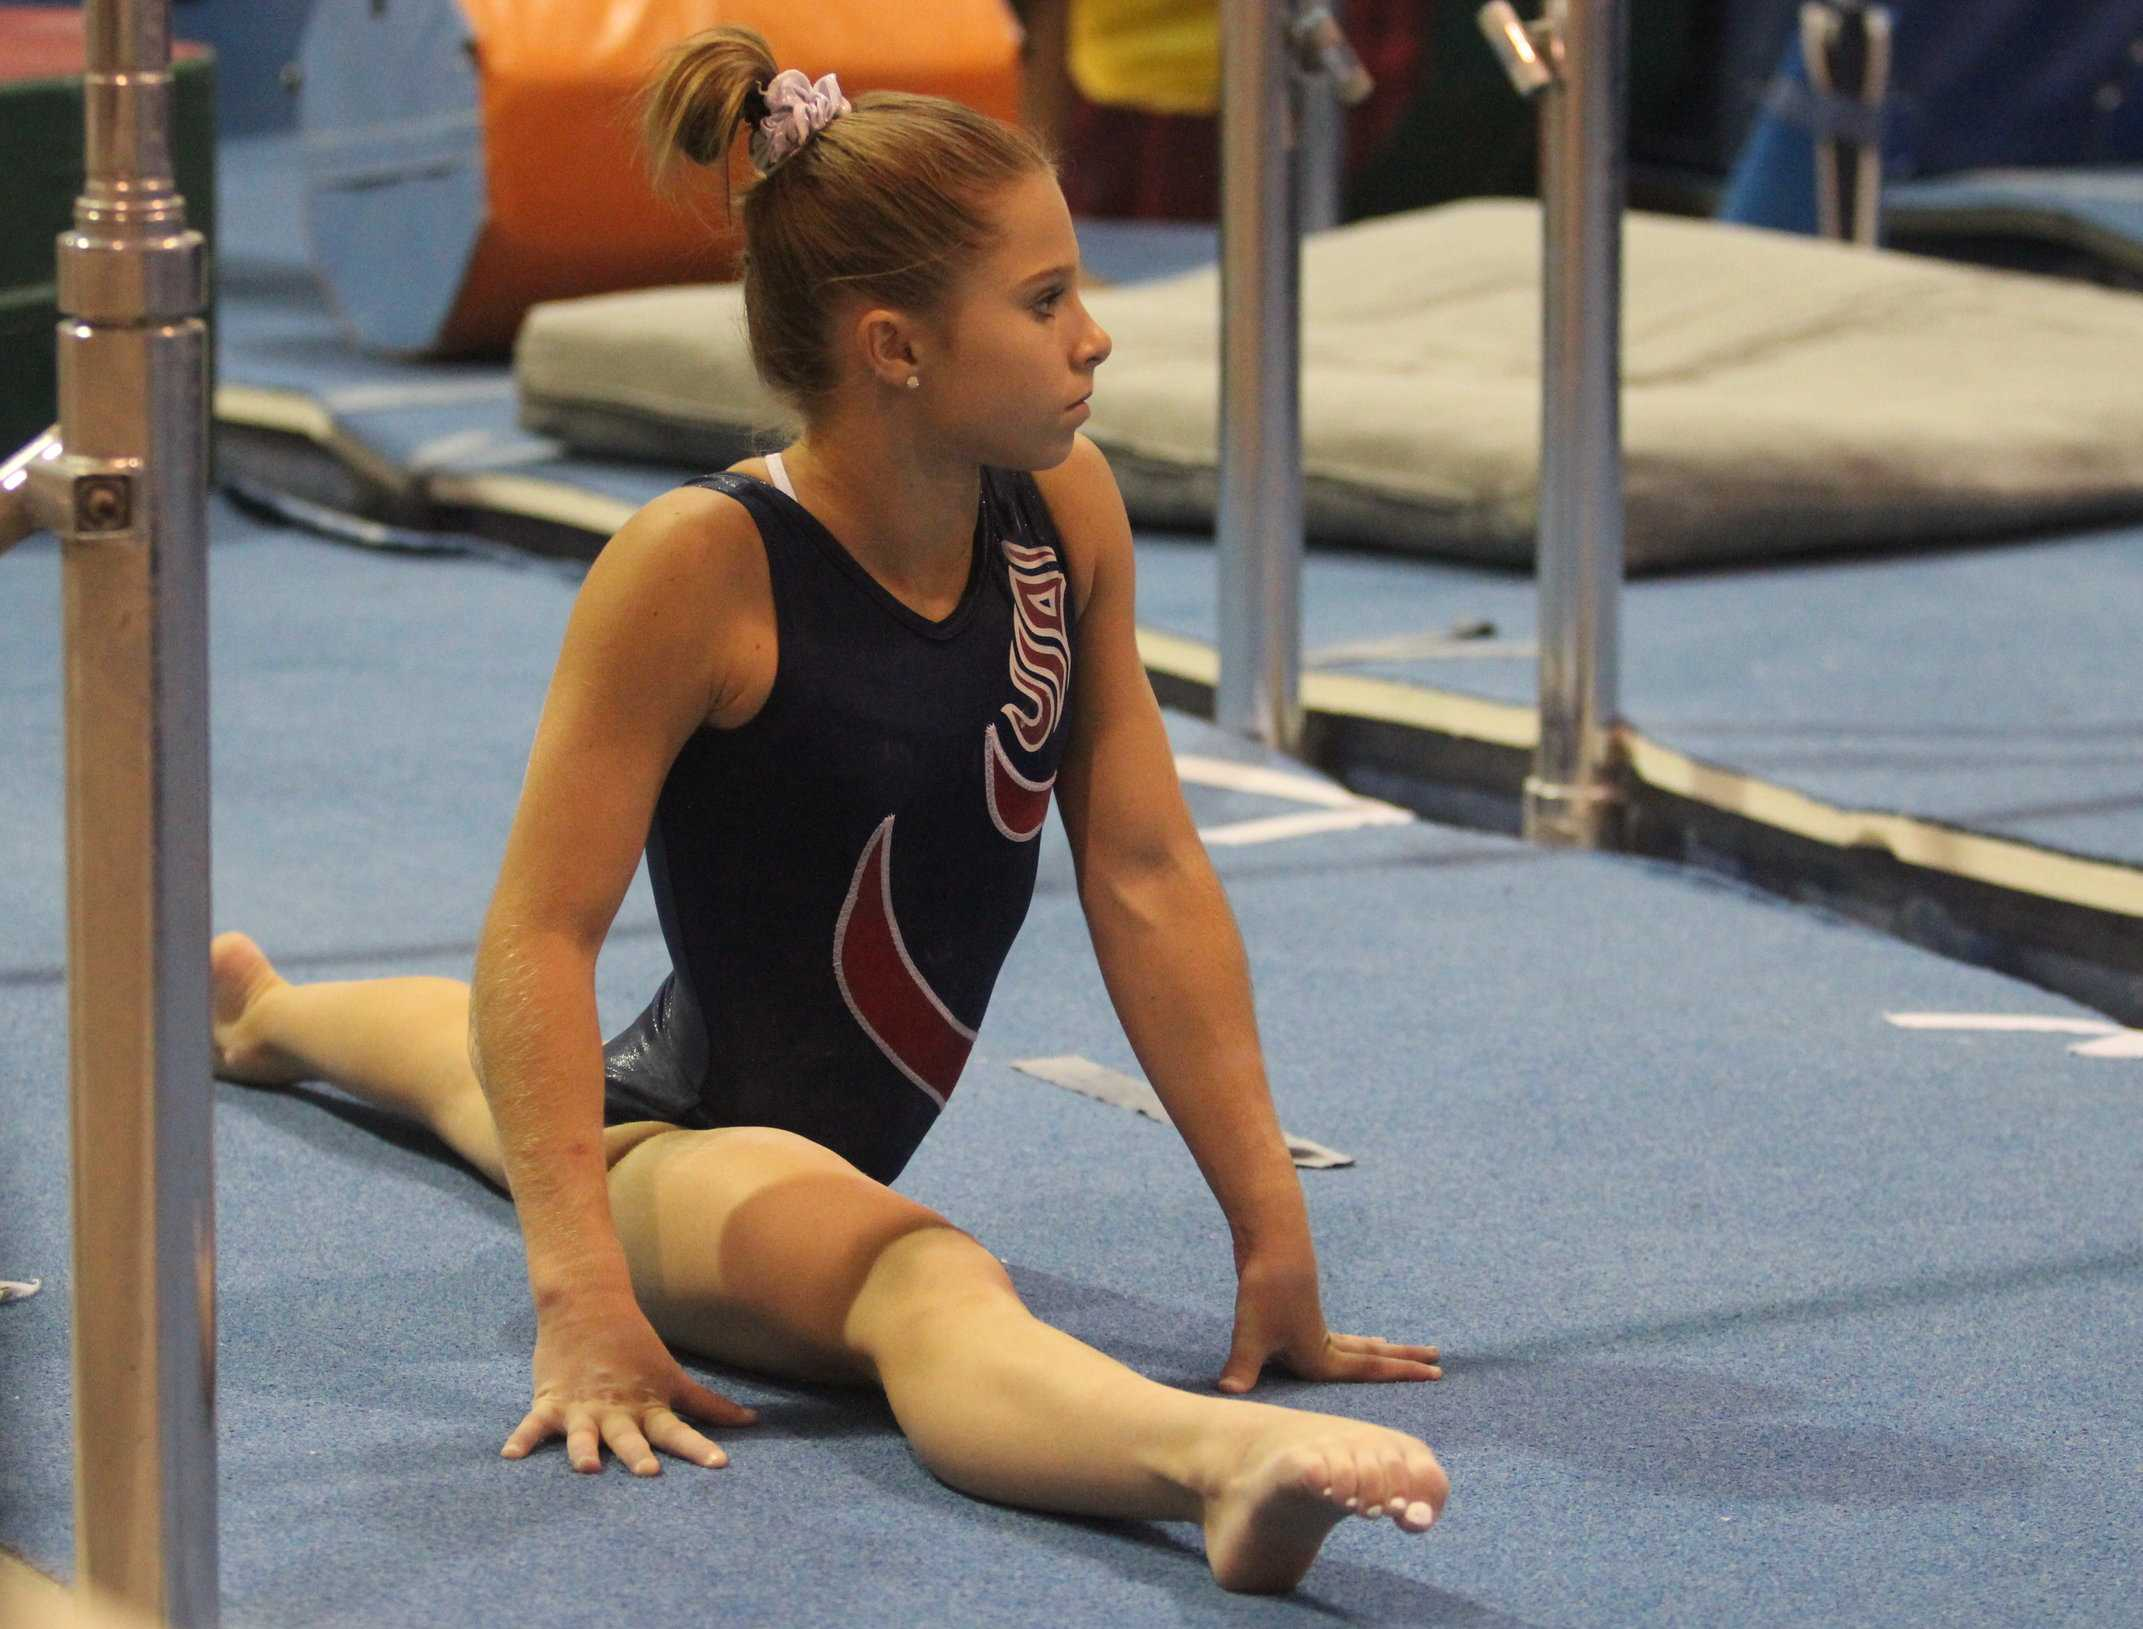 Gymnast Ragan Smith trains at Texas Dreams gym in Coppell. She practices for over six hours every day.